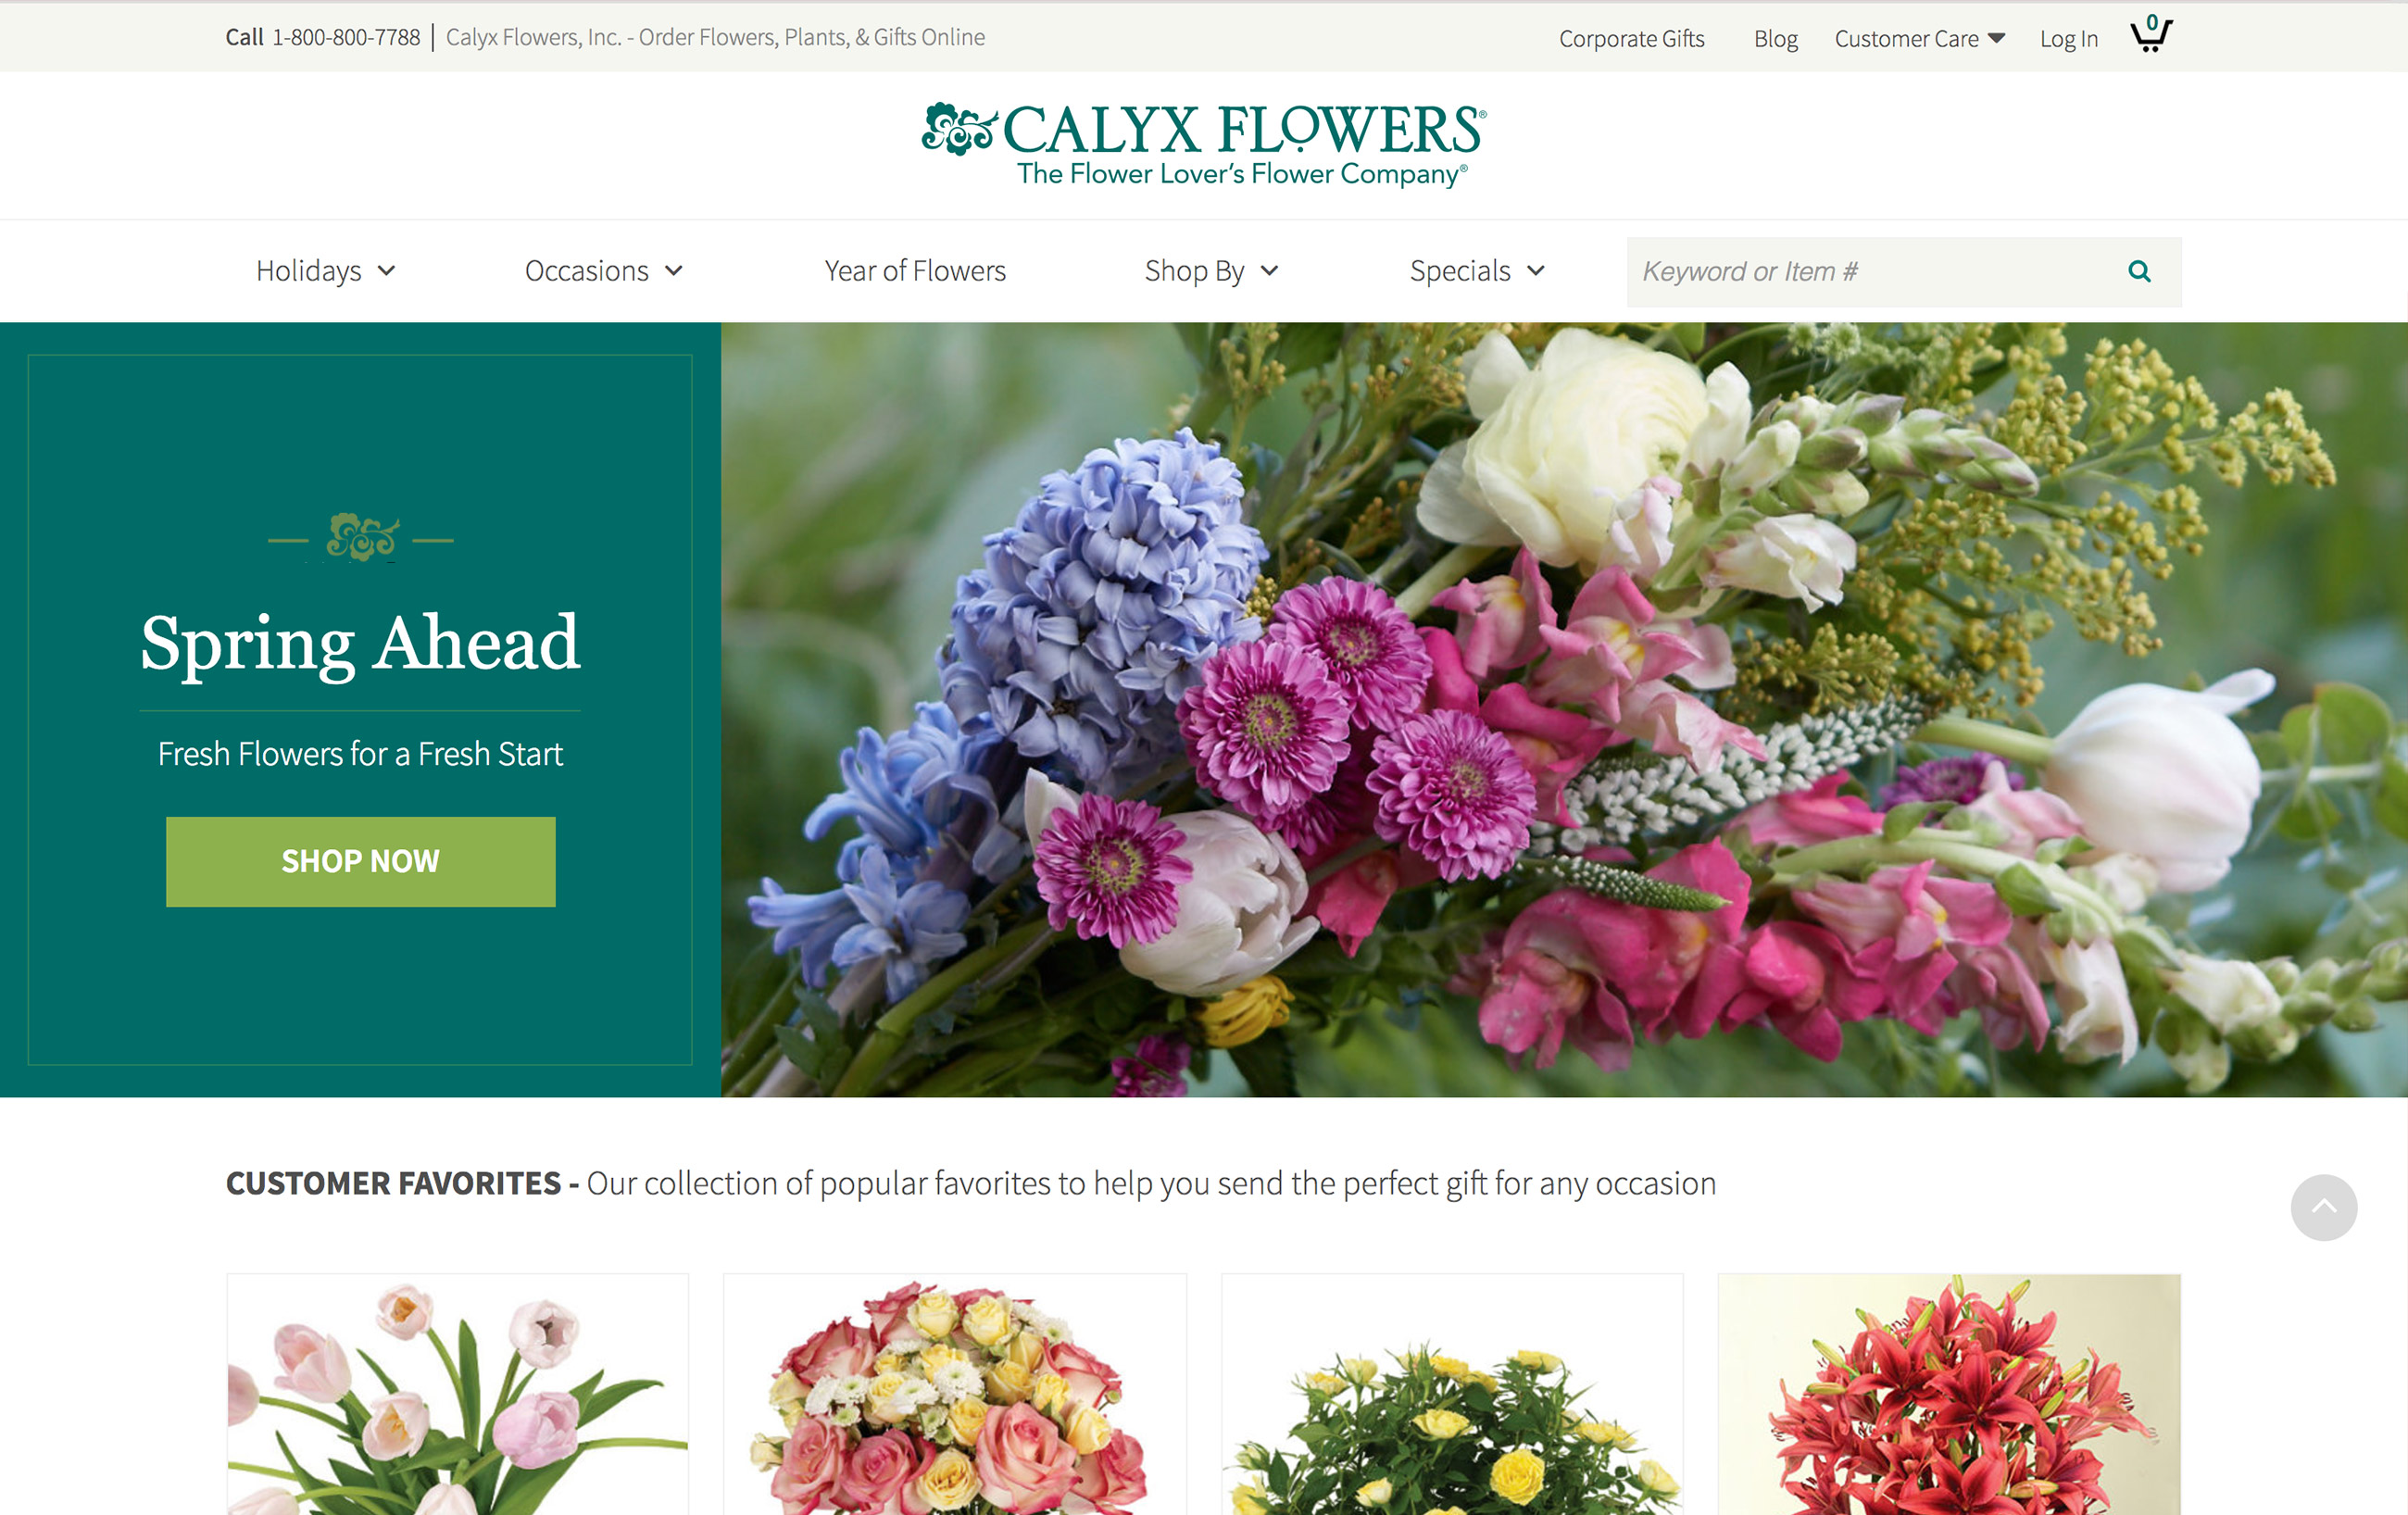 calyx flowers Fiscal1991 one hundred thousand prior customers received one catalog per month, which provided 60,000 orders recipients of calyx & corolla flowers and others who had.